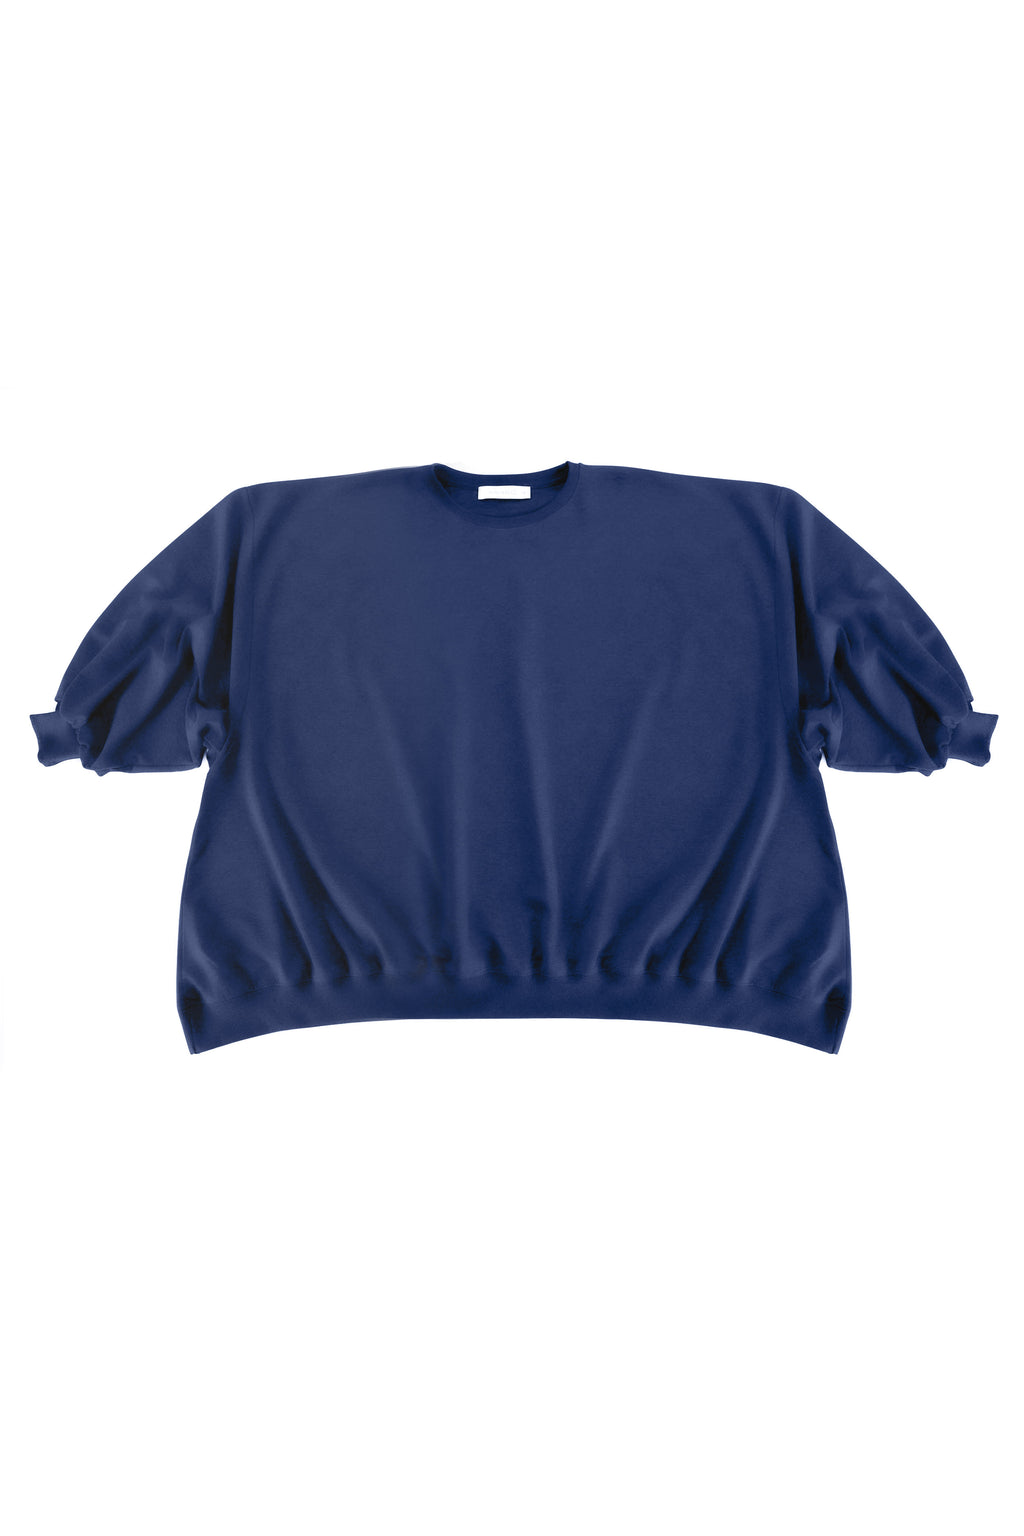 Anya Phantom Sweatshirt in Indigo